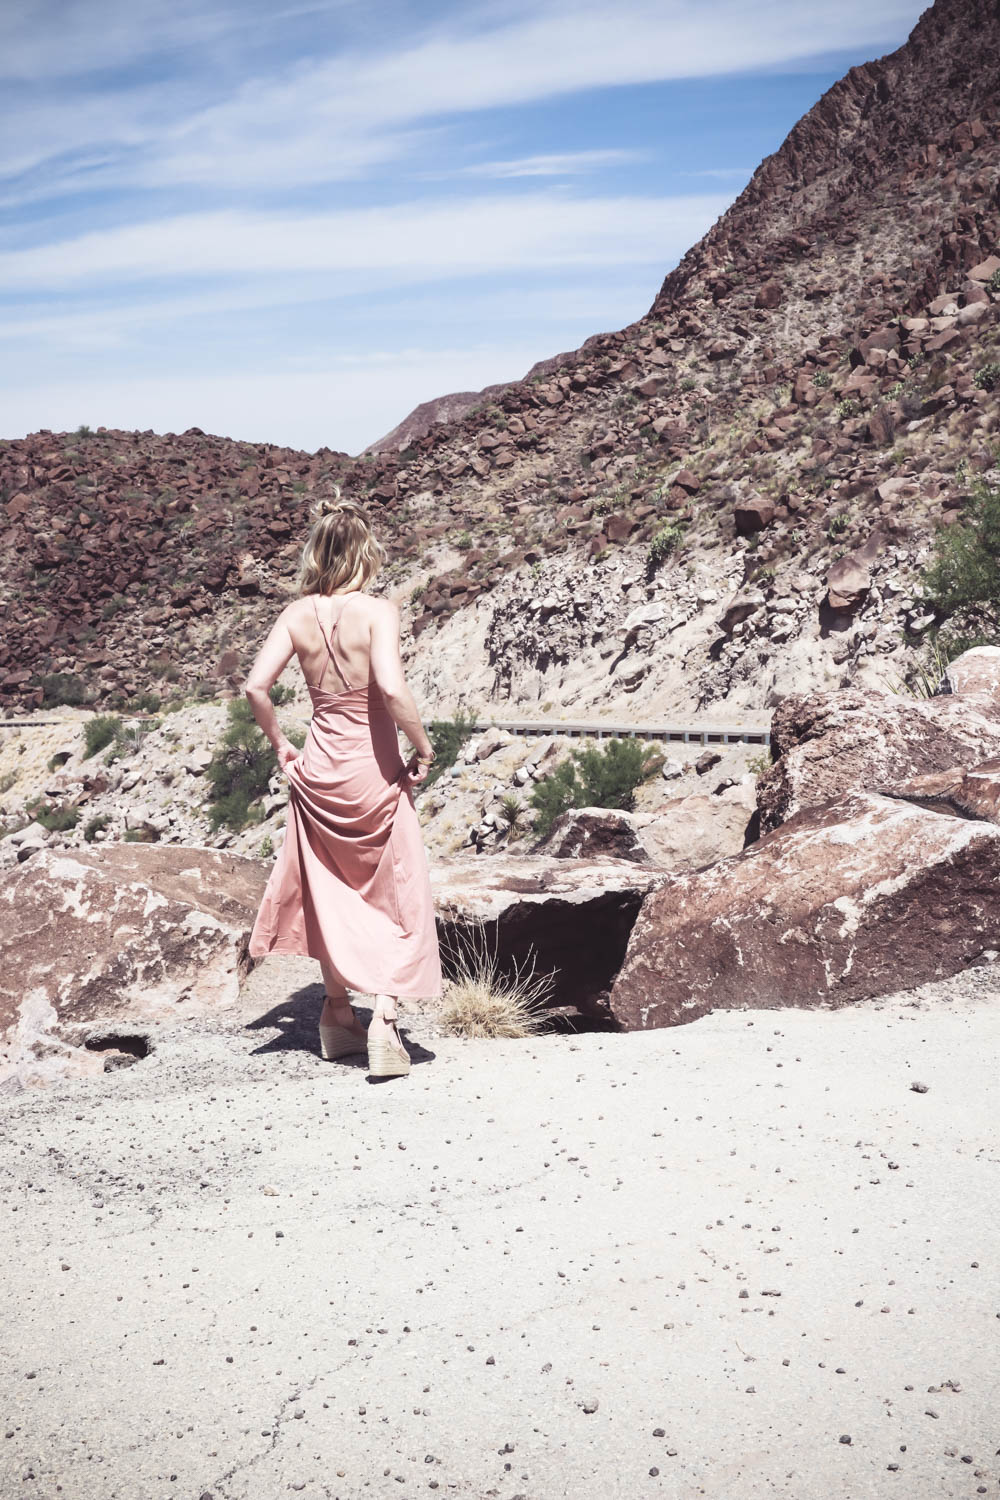 Wrap Dress in blush nude color on fashion blogger and fashion youtuber erin busbee of busbestyle, san antonio, texas, shot near Big Bend National Park in West Texas along the Rio Grande, women's dress ideas